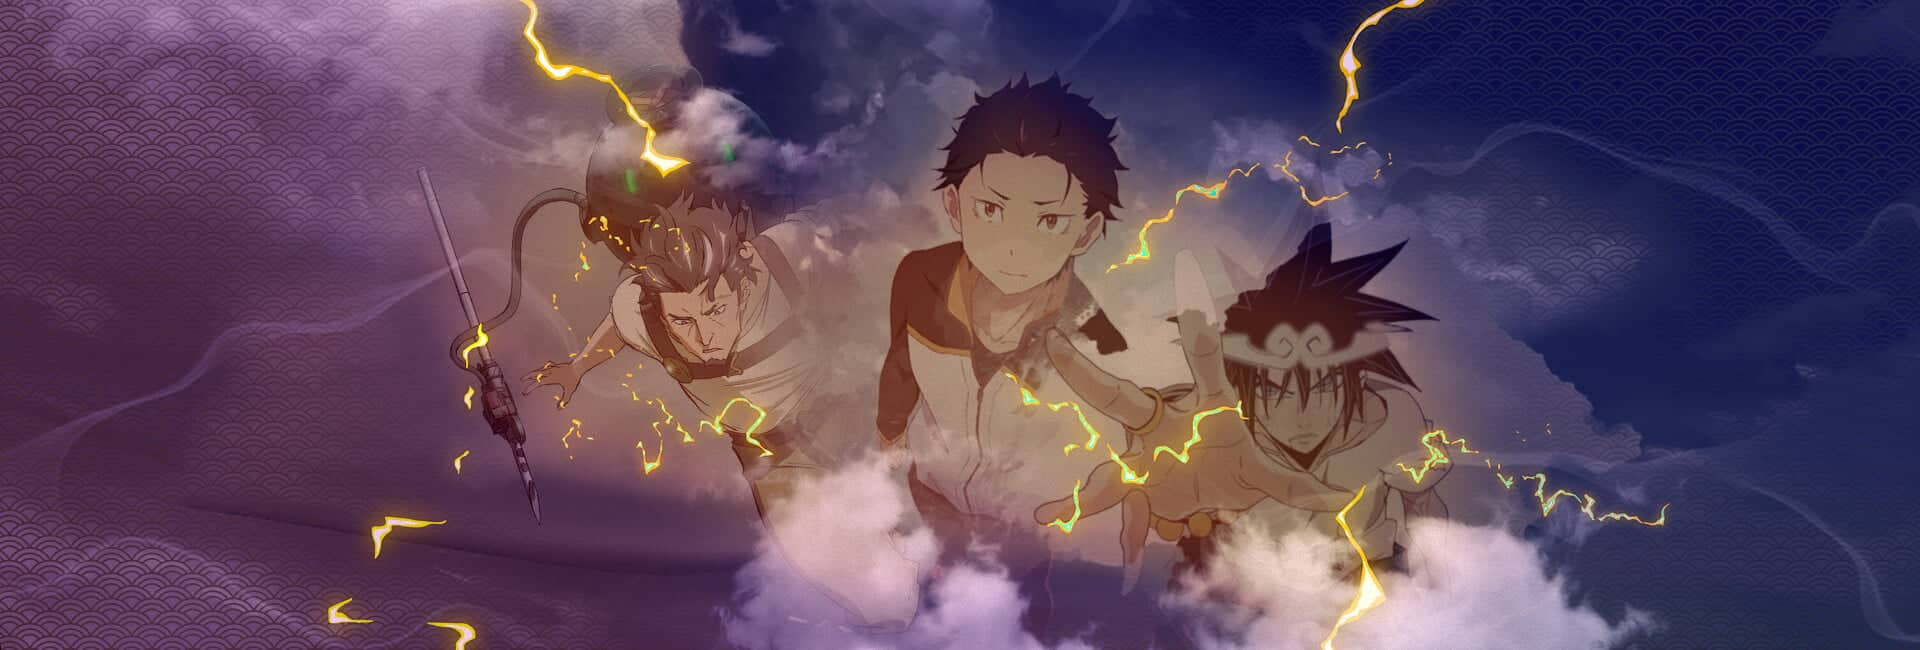 animes trovejantes da temporada de julho 2020 god of highschool, rezero, deca dance